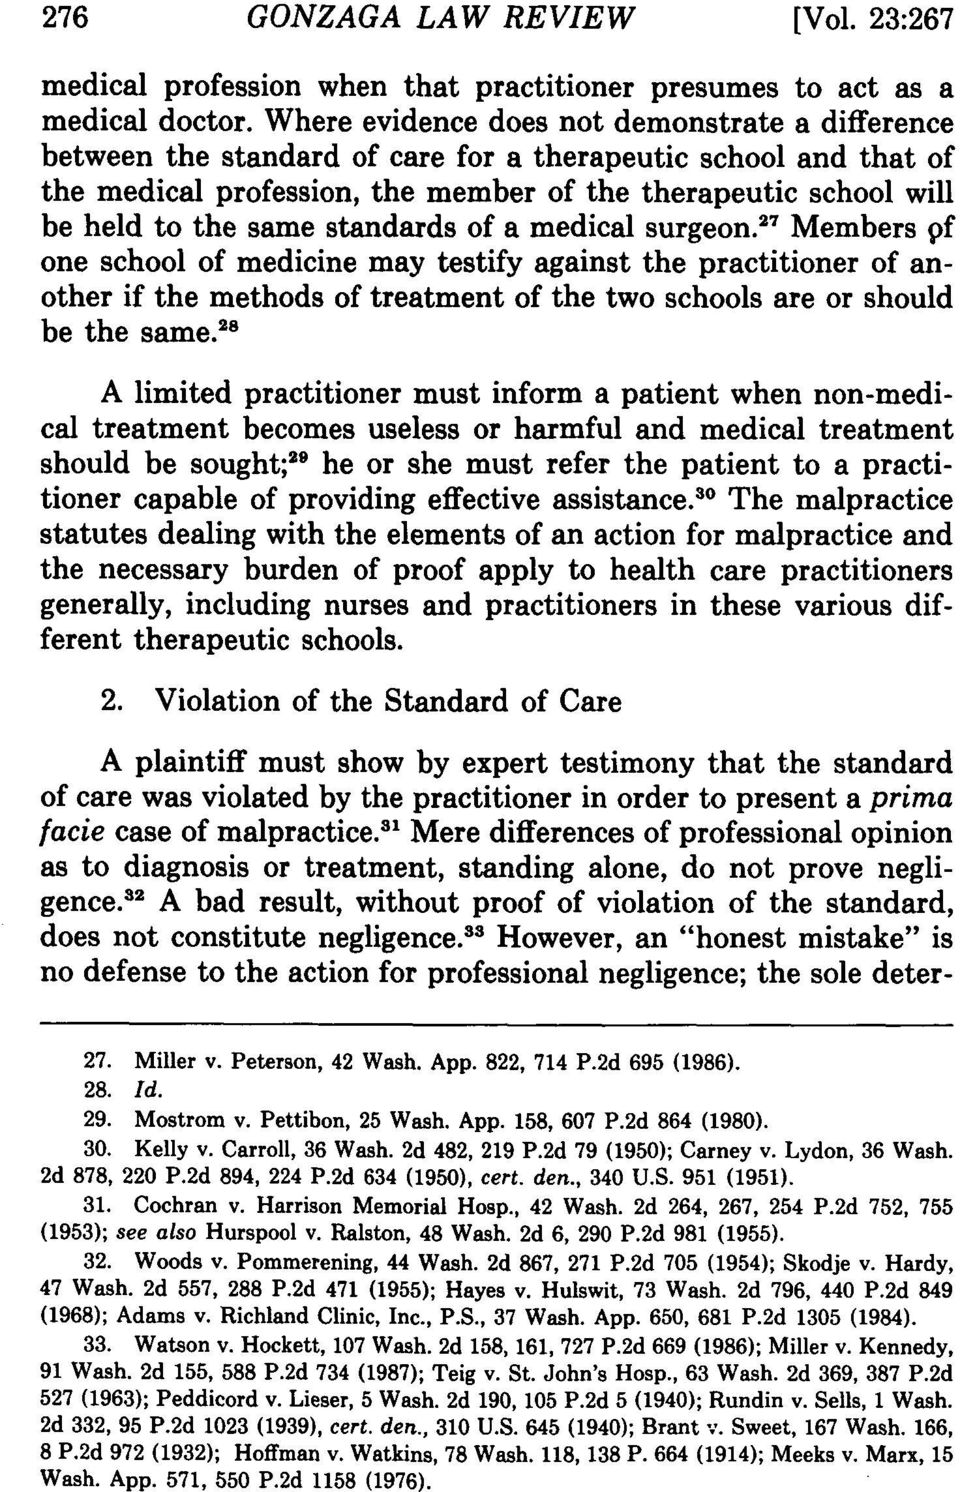 same standards of a medical surgeon. 2 Members pf one school of medicine may testify against the practitioner of another if the methods of treatment of the two schools are or should be the same.